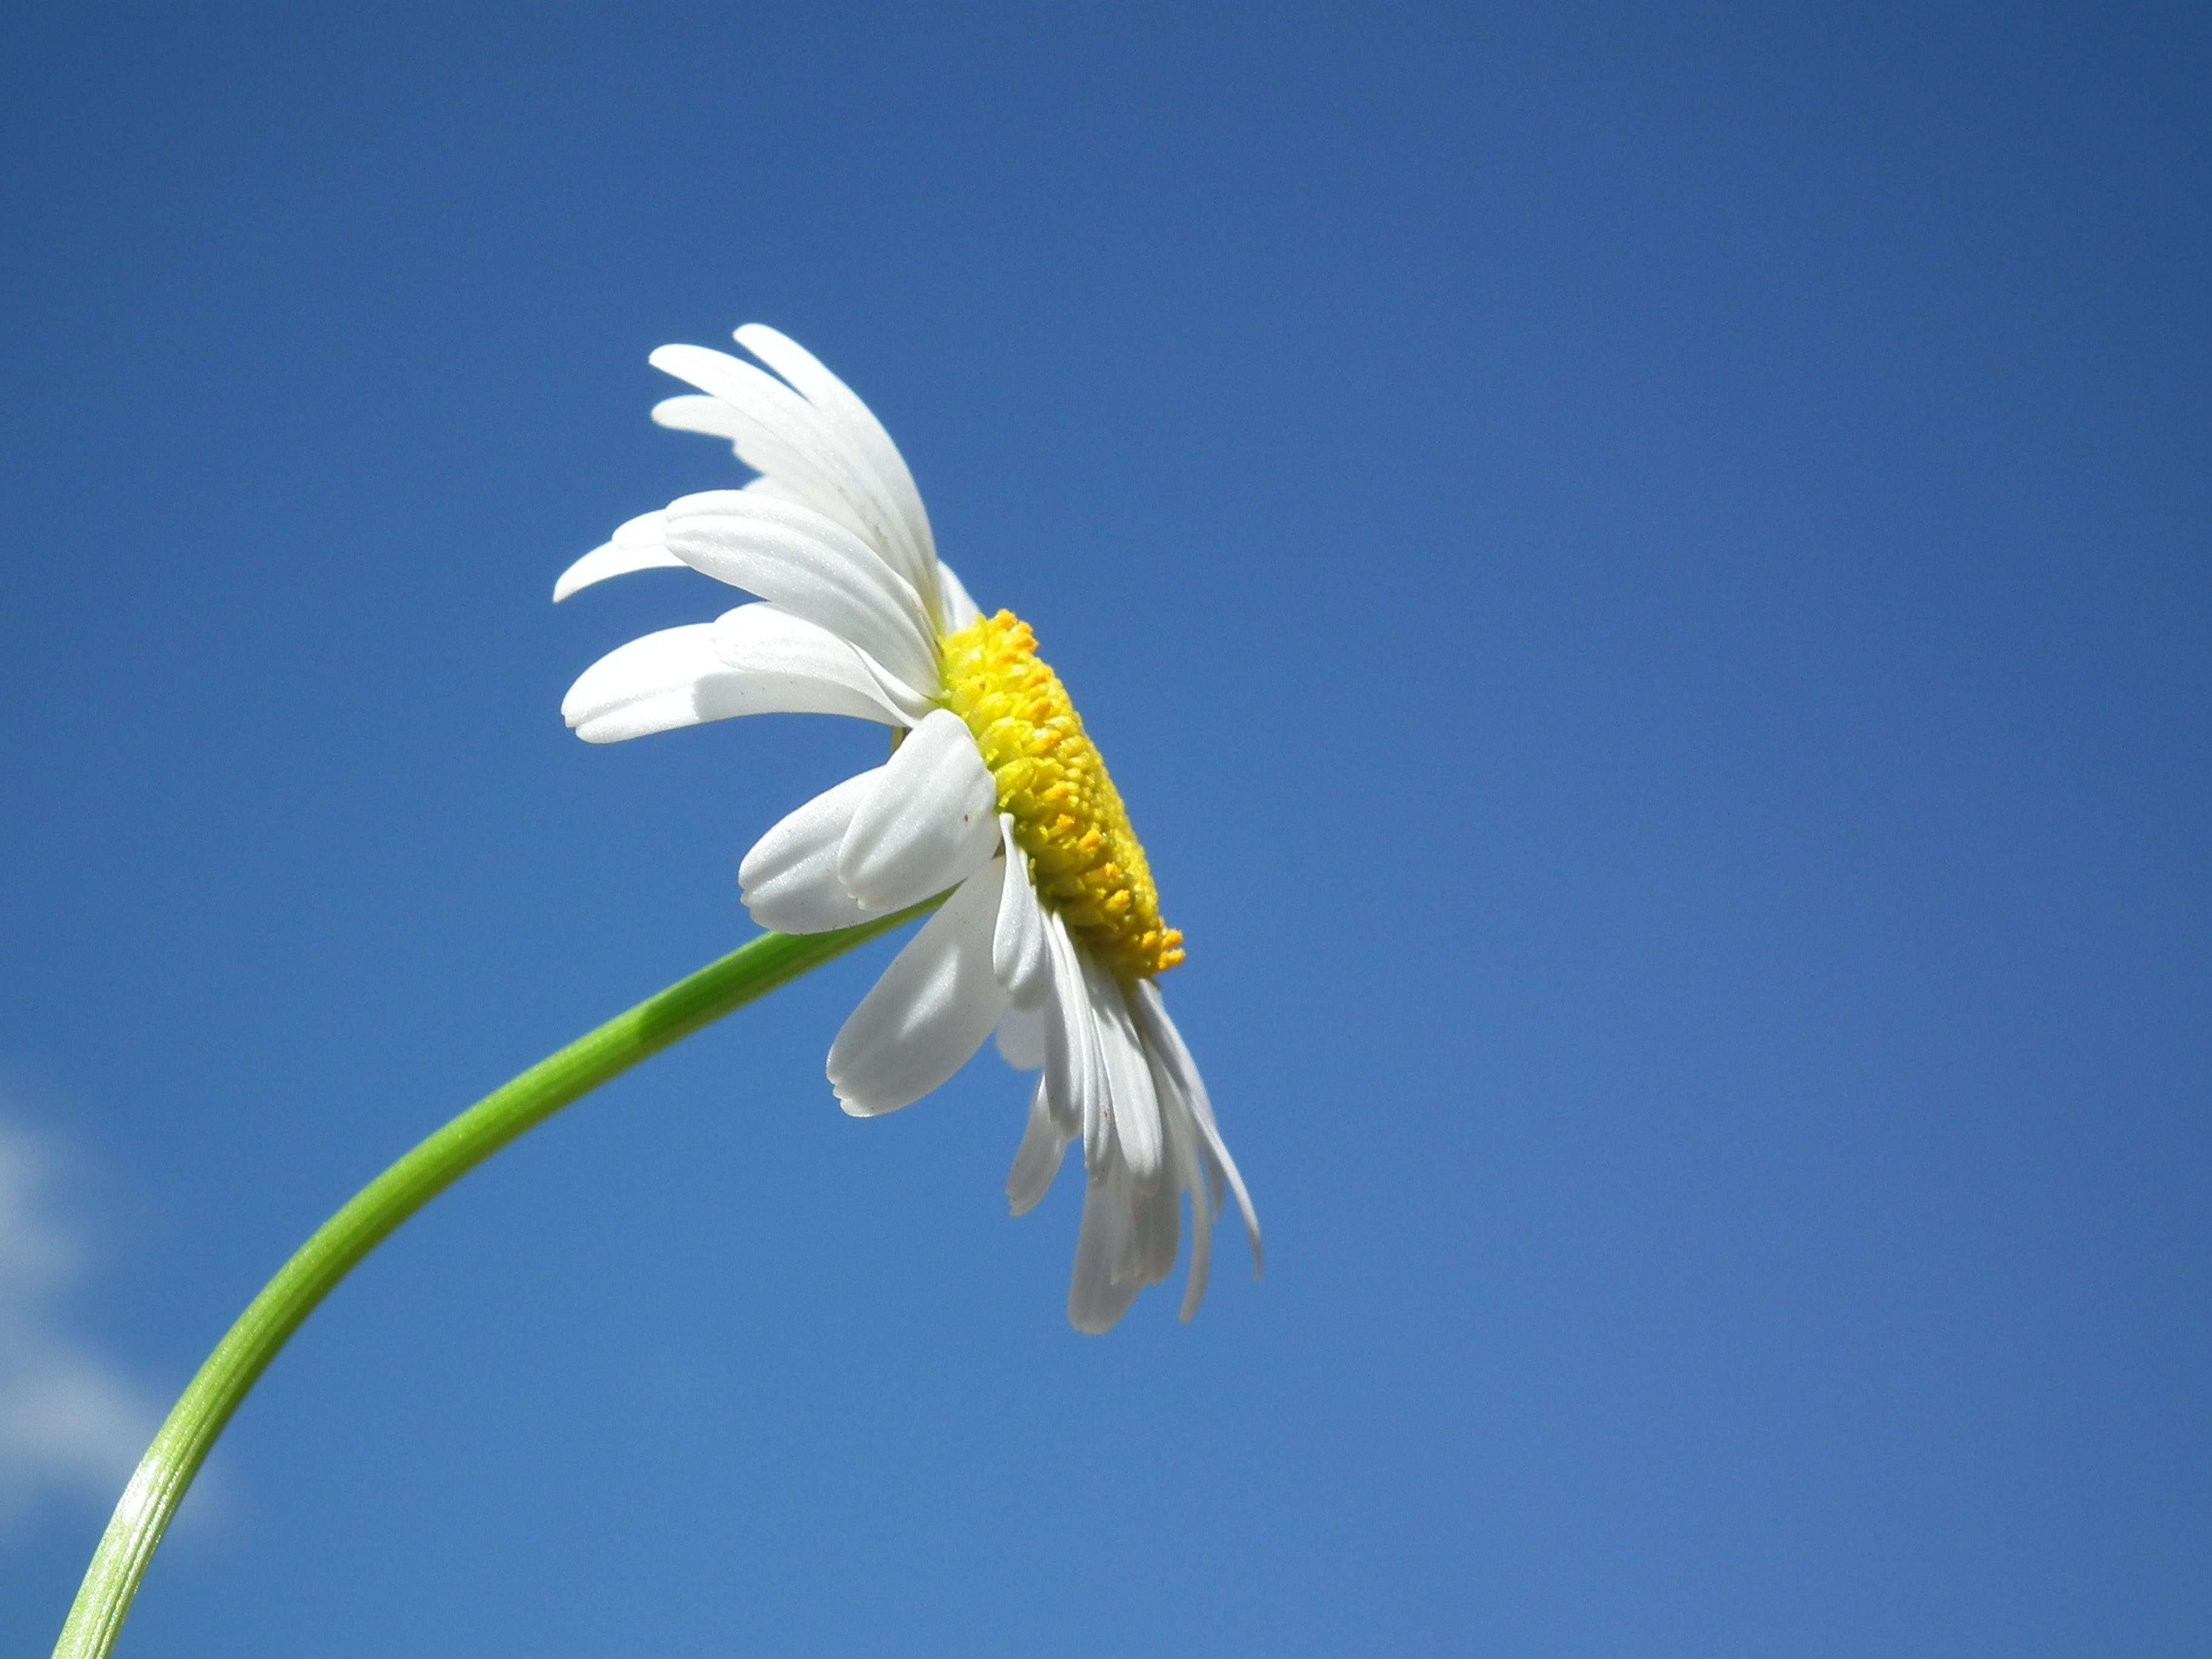 White Daisy Under Blue and White Cloudy Sky